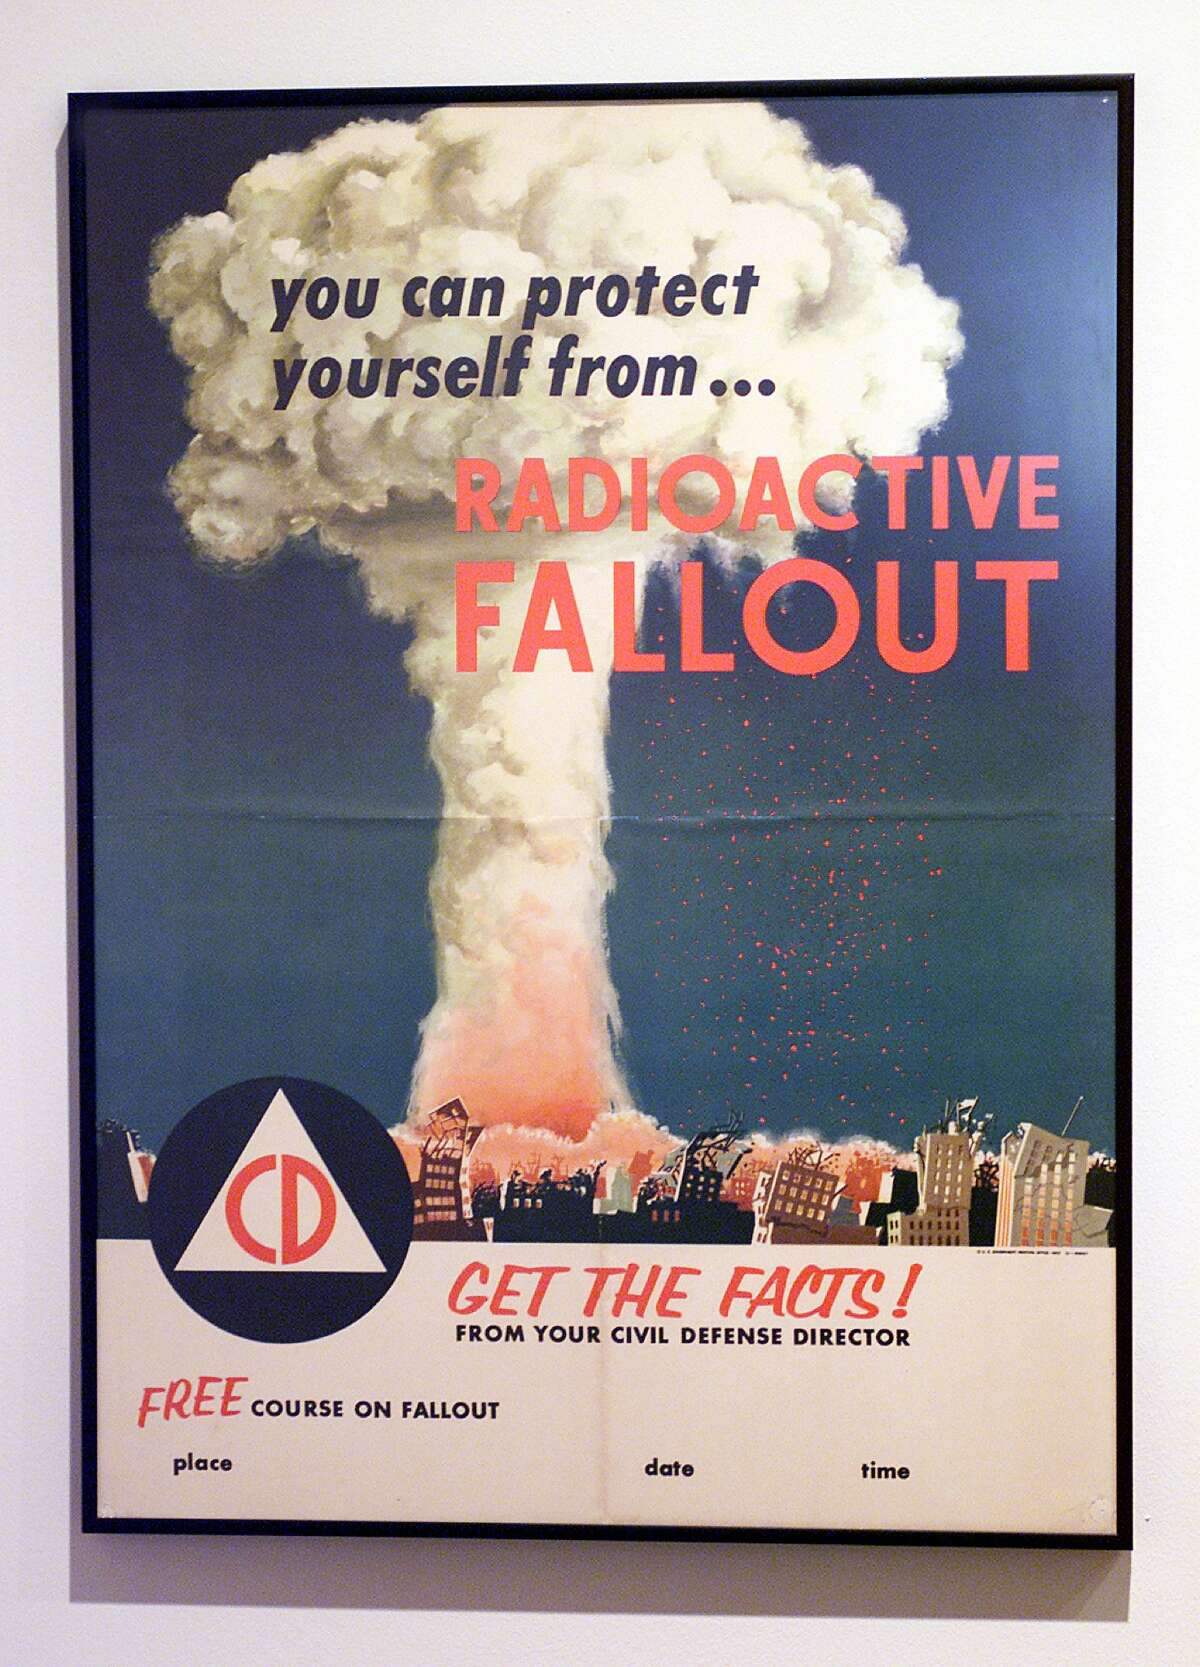 A fallout warning poster from the 1950s on exhibit at The University Museum in Los Angeles.